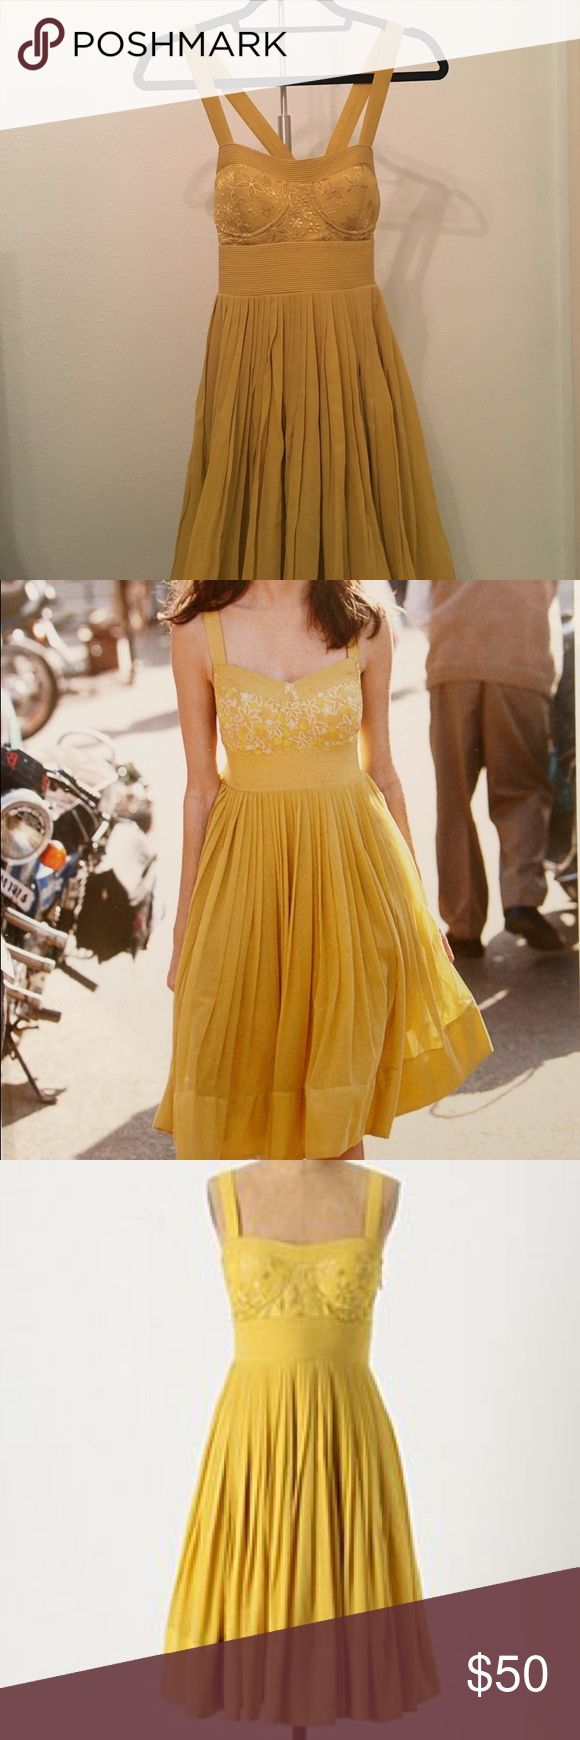 Anthropologie Mustard Colored Dress Beautiful sundress... sadly not my size anymore. 37 inches in length Anthropologie Dresses Midi